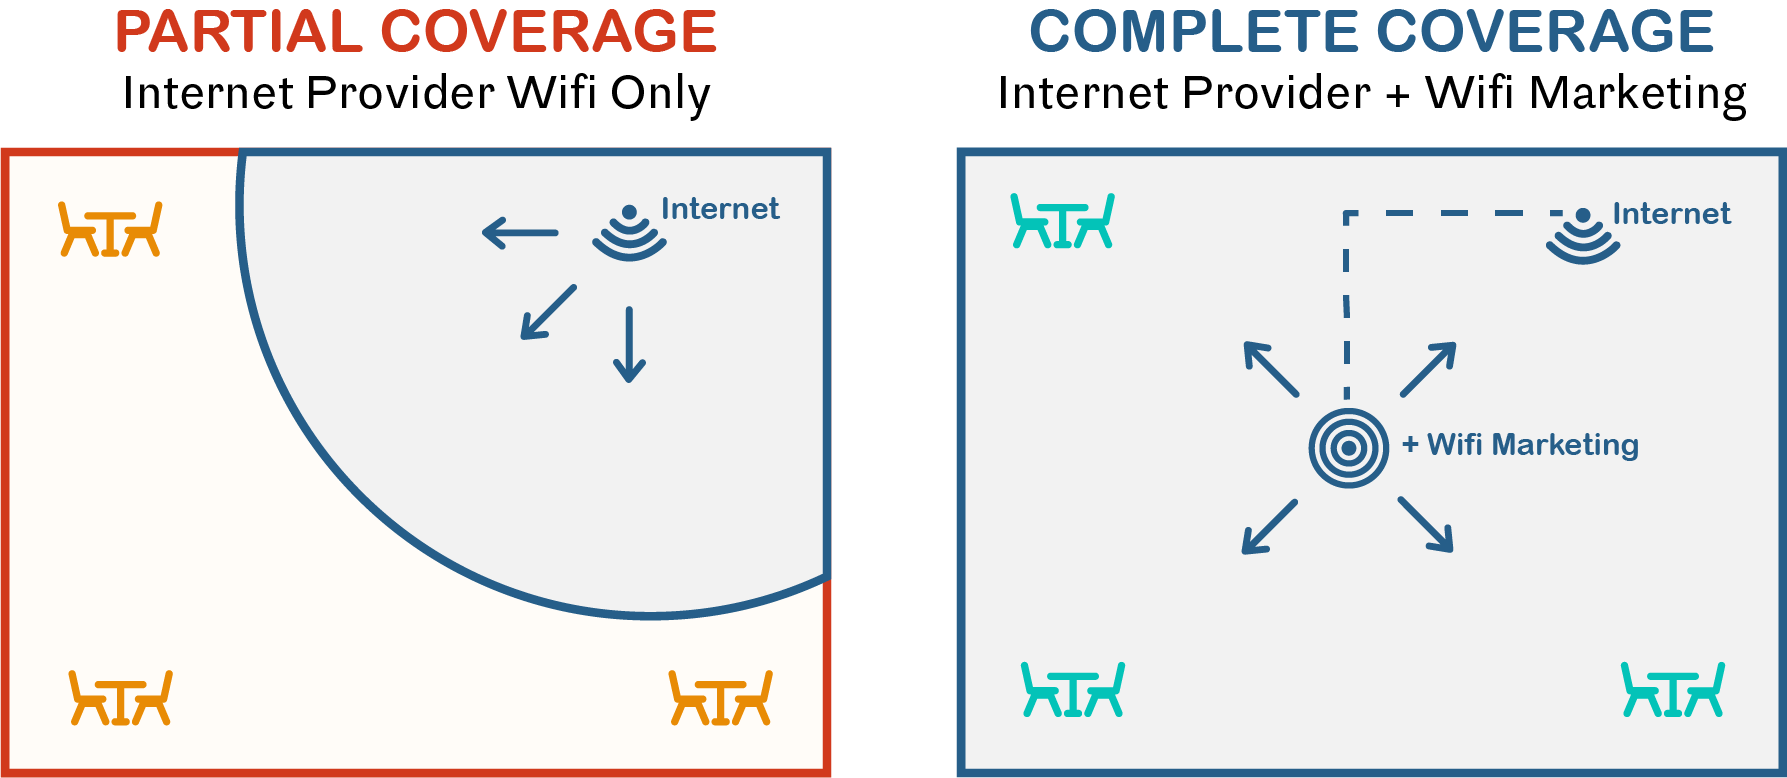 Partial Coverage Internet Provider Wifi Only Illustration, Complete Coverage Internet Provider + Wifi Marketing Illustration